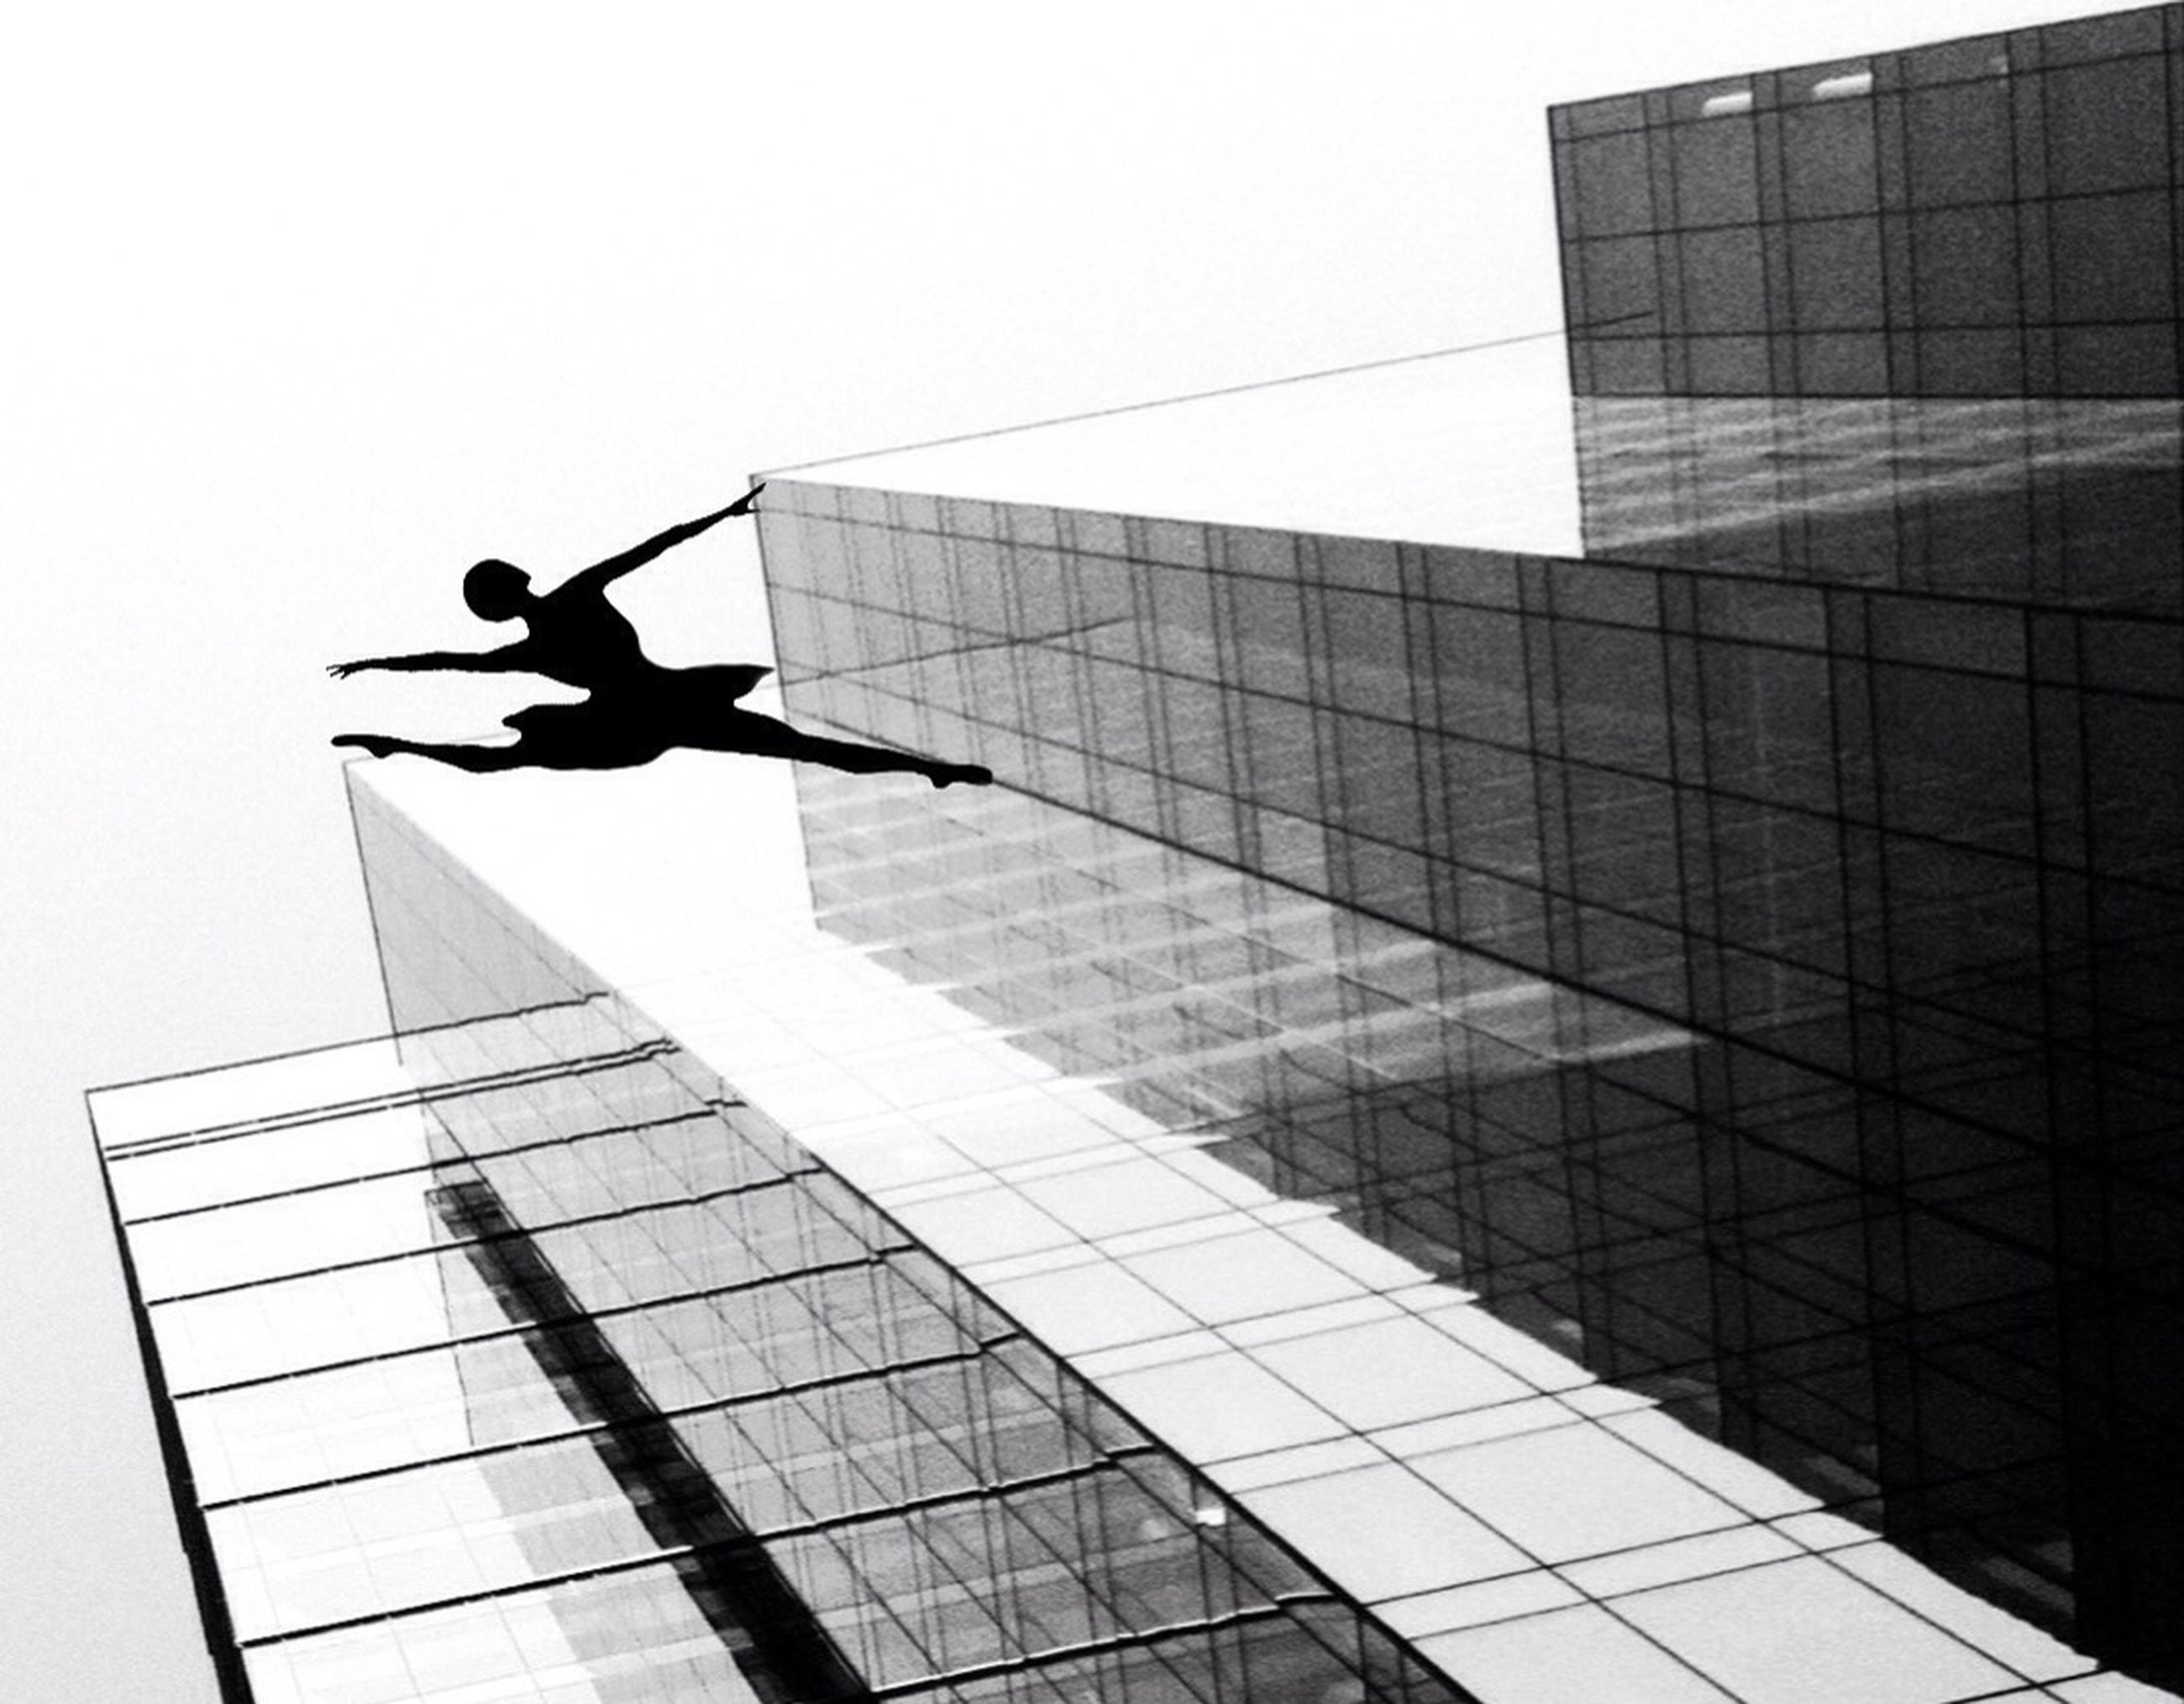 architecture, building exterior, skyscraper, built structure, real people, city, reflection, outdoors, silhouette, men, day, low angle view, one person, modern, full length, tall, risk, clear sky, window washer, sky, people